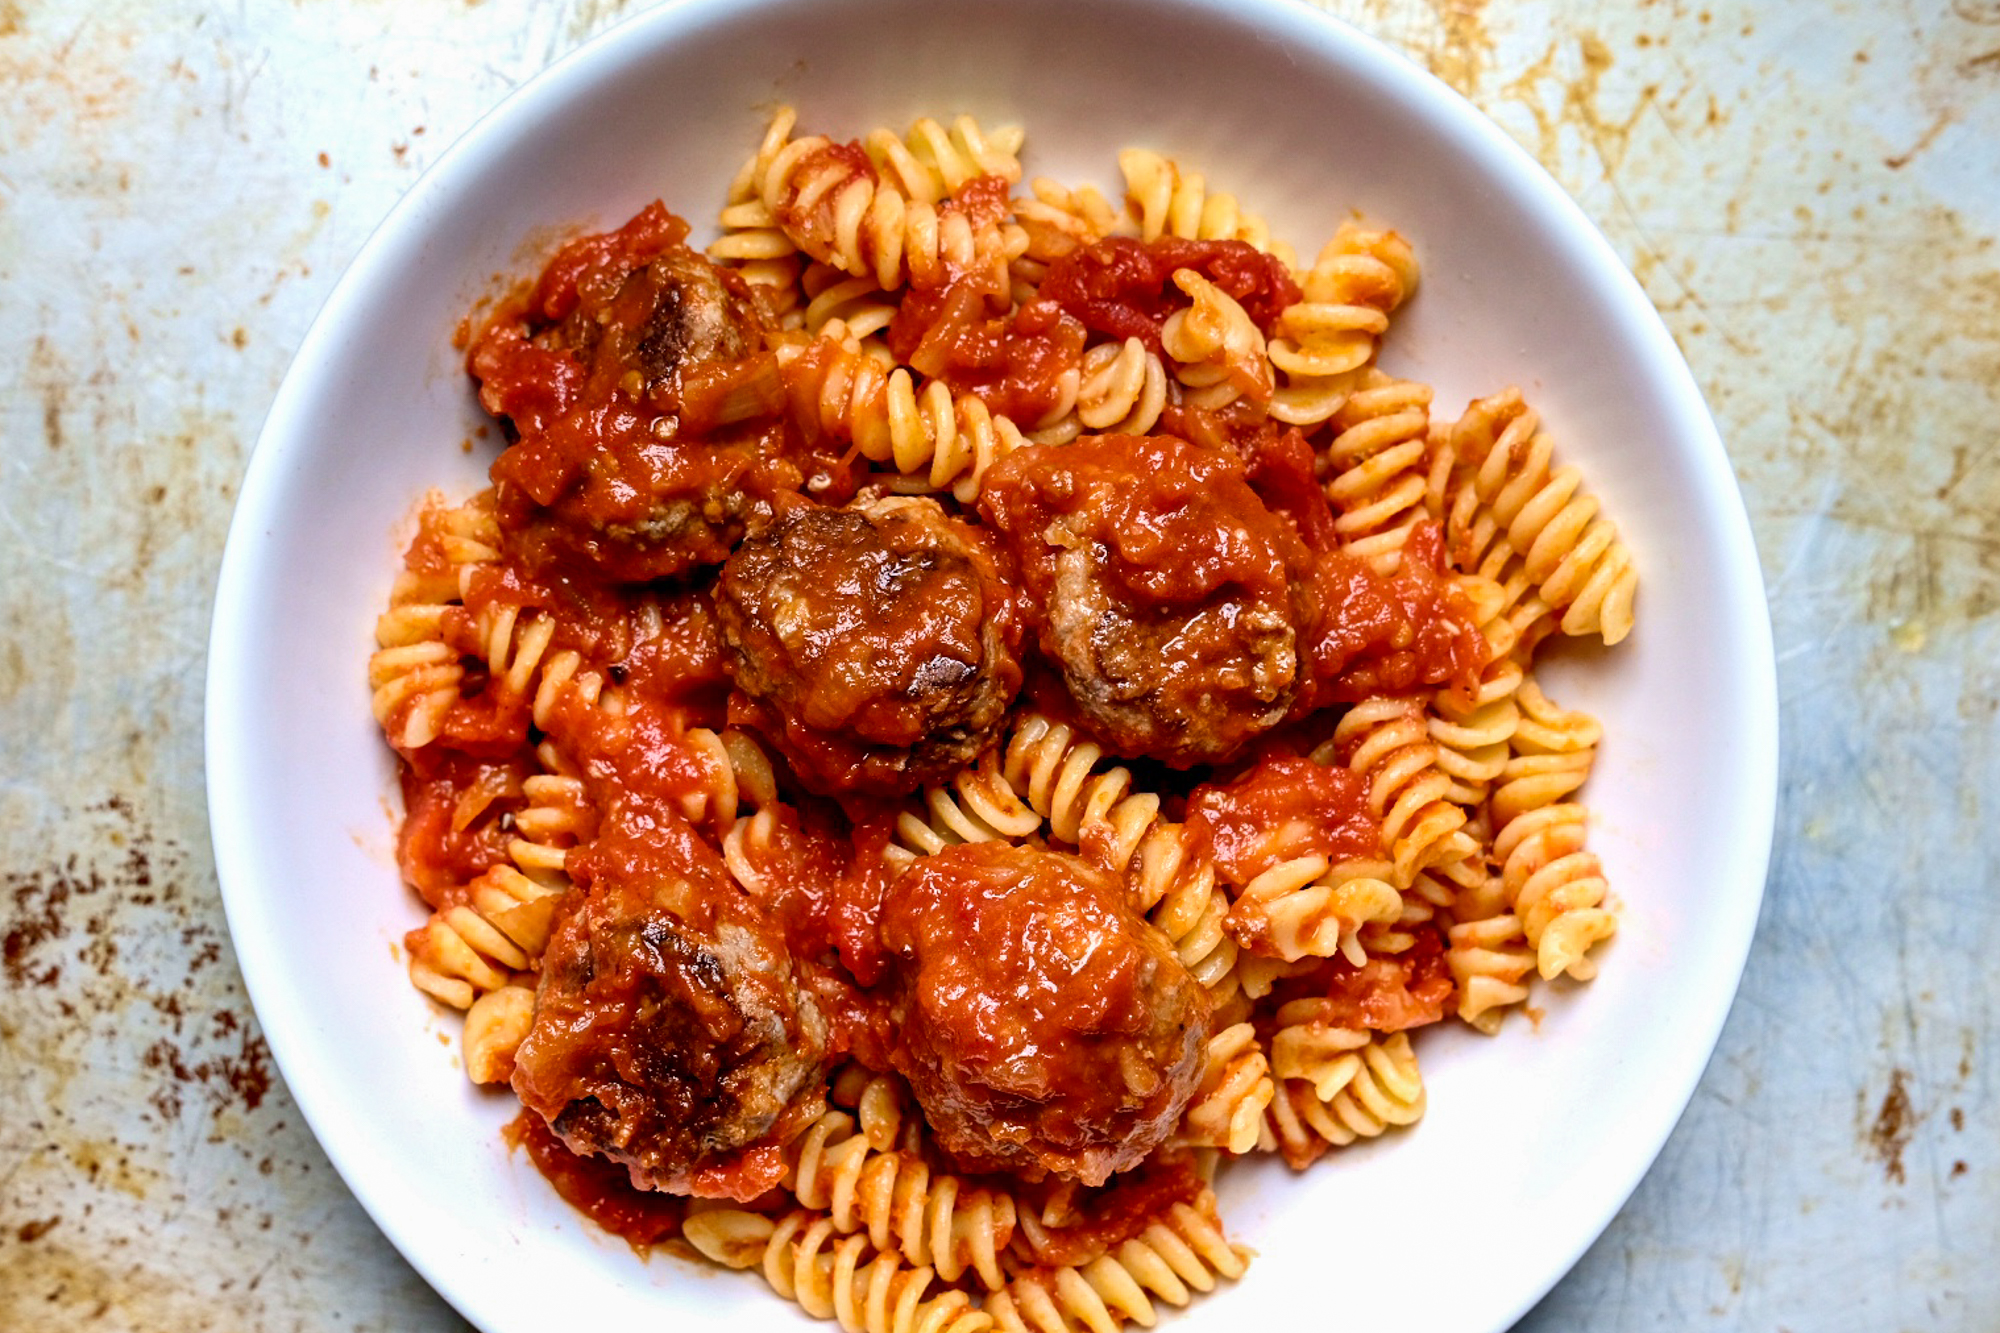 Stock Your Freezer With Meatballs